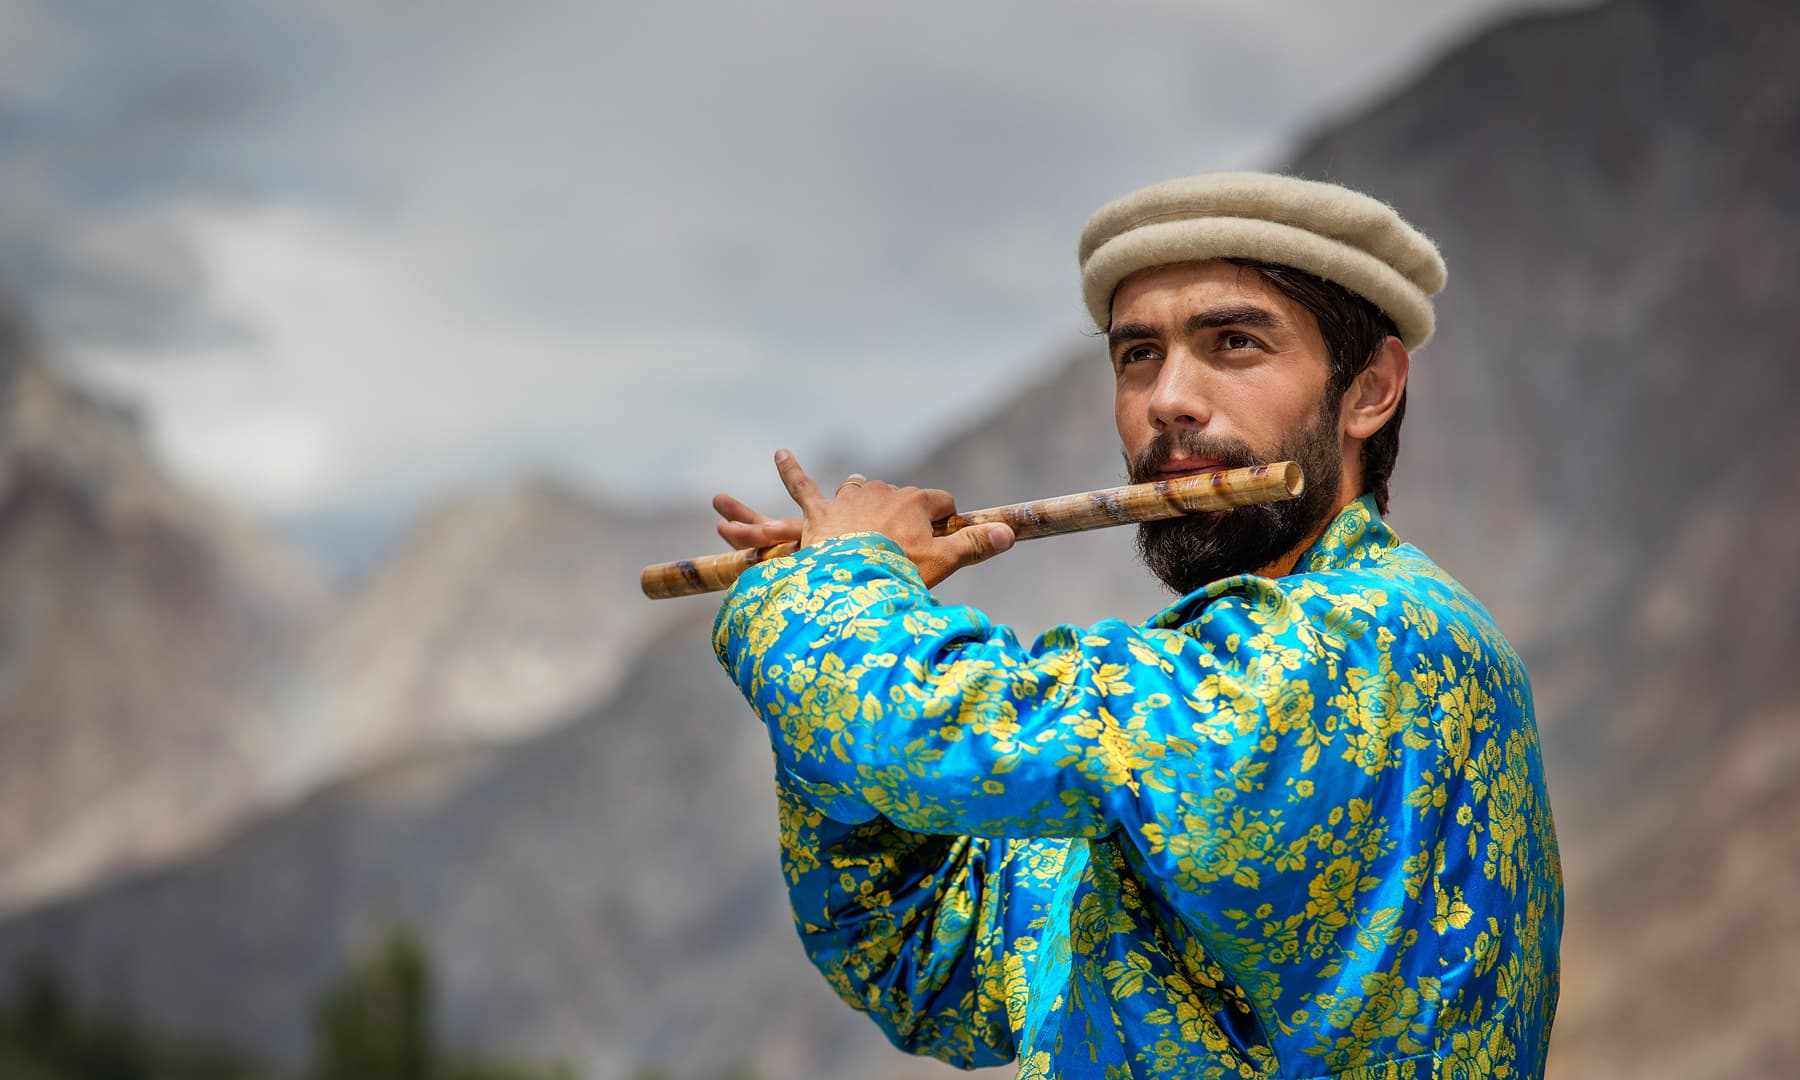 A student practices playing the flute.